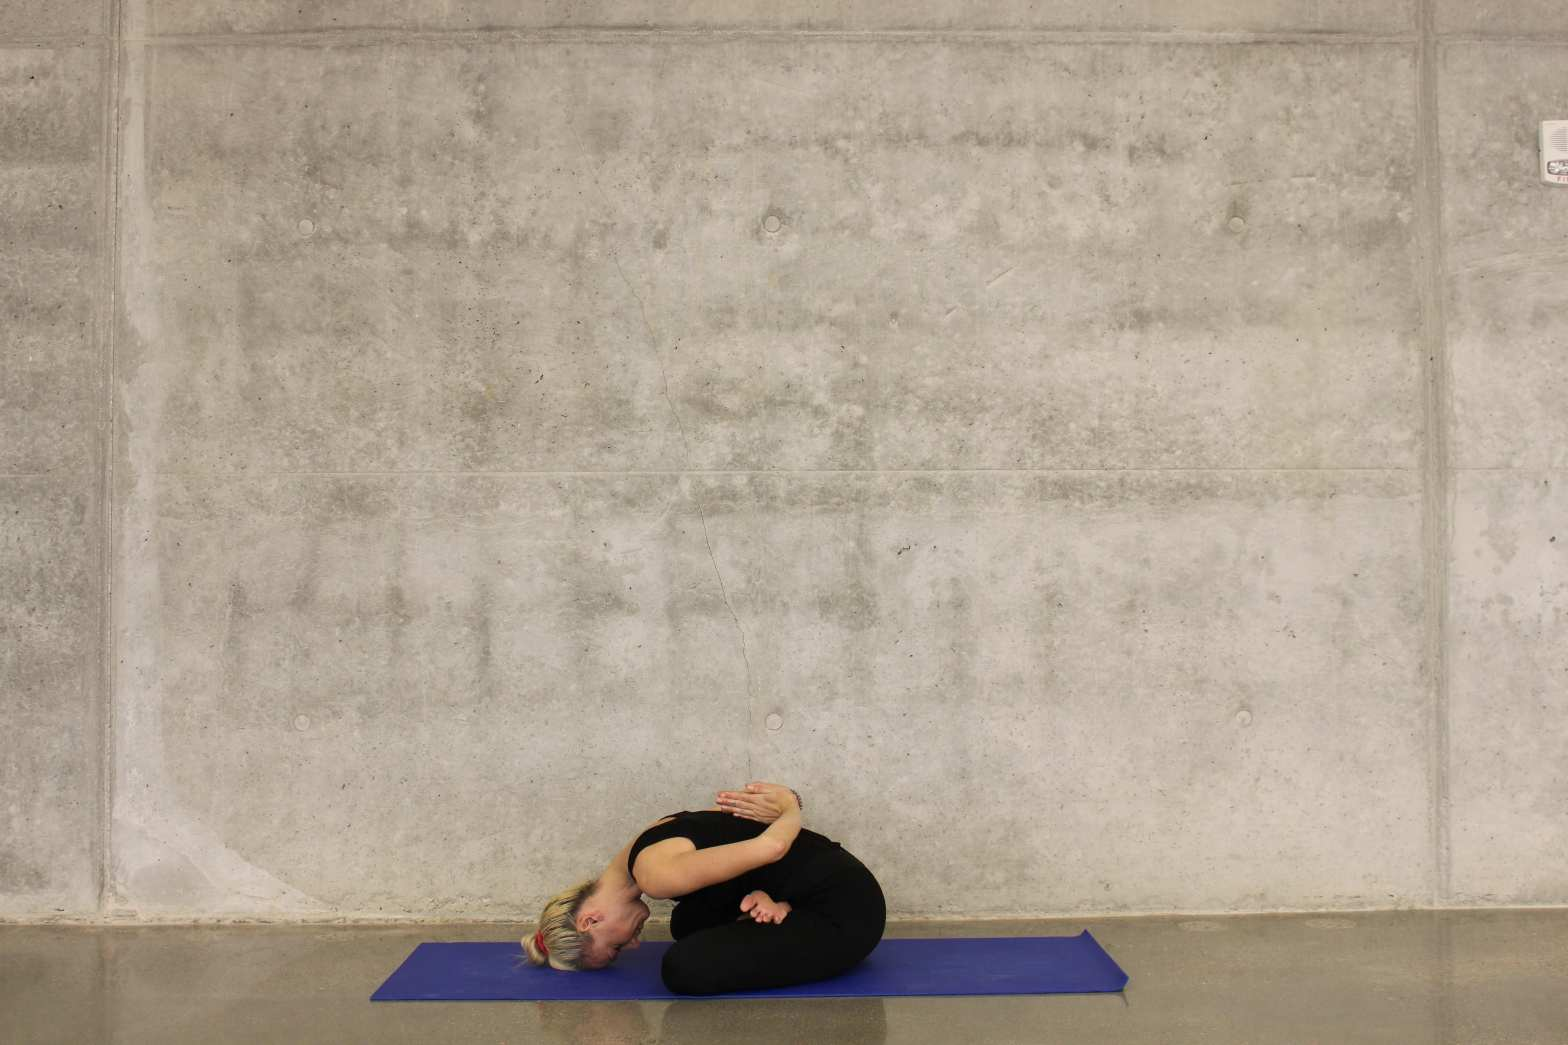 Person doing aa releasing yoga pose